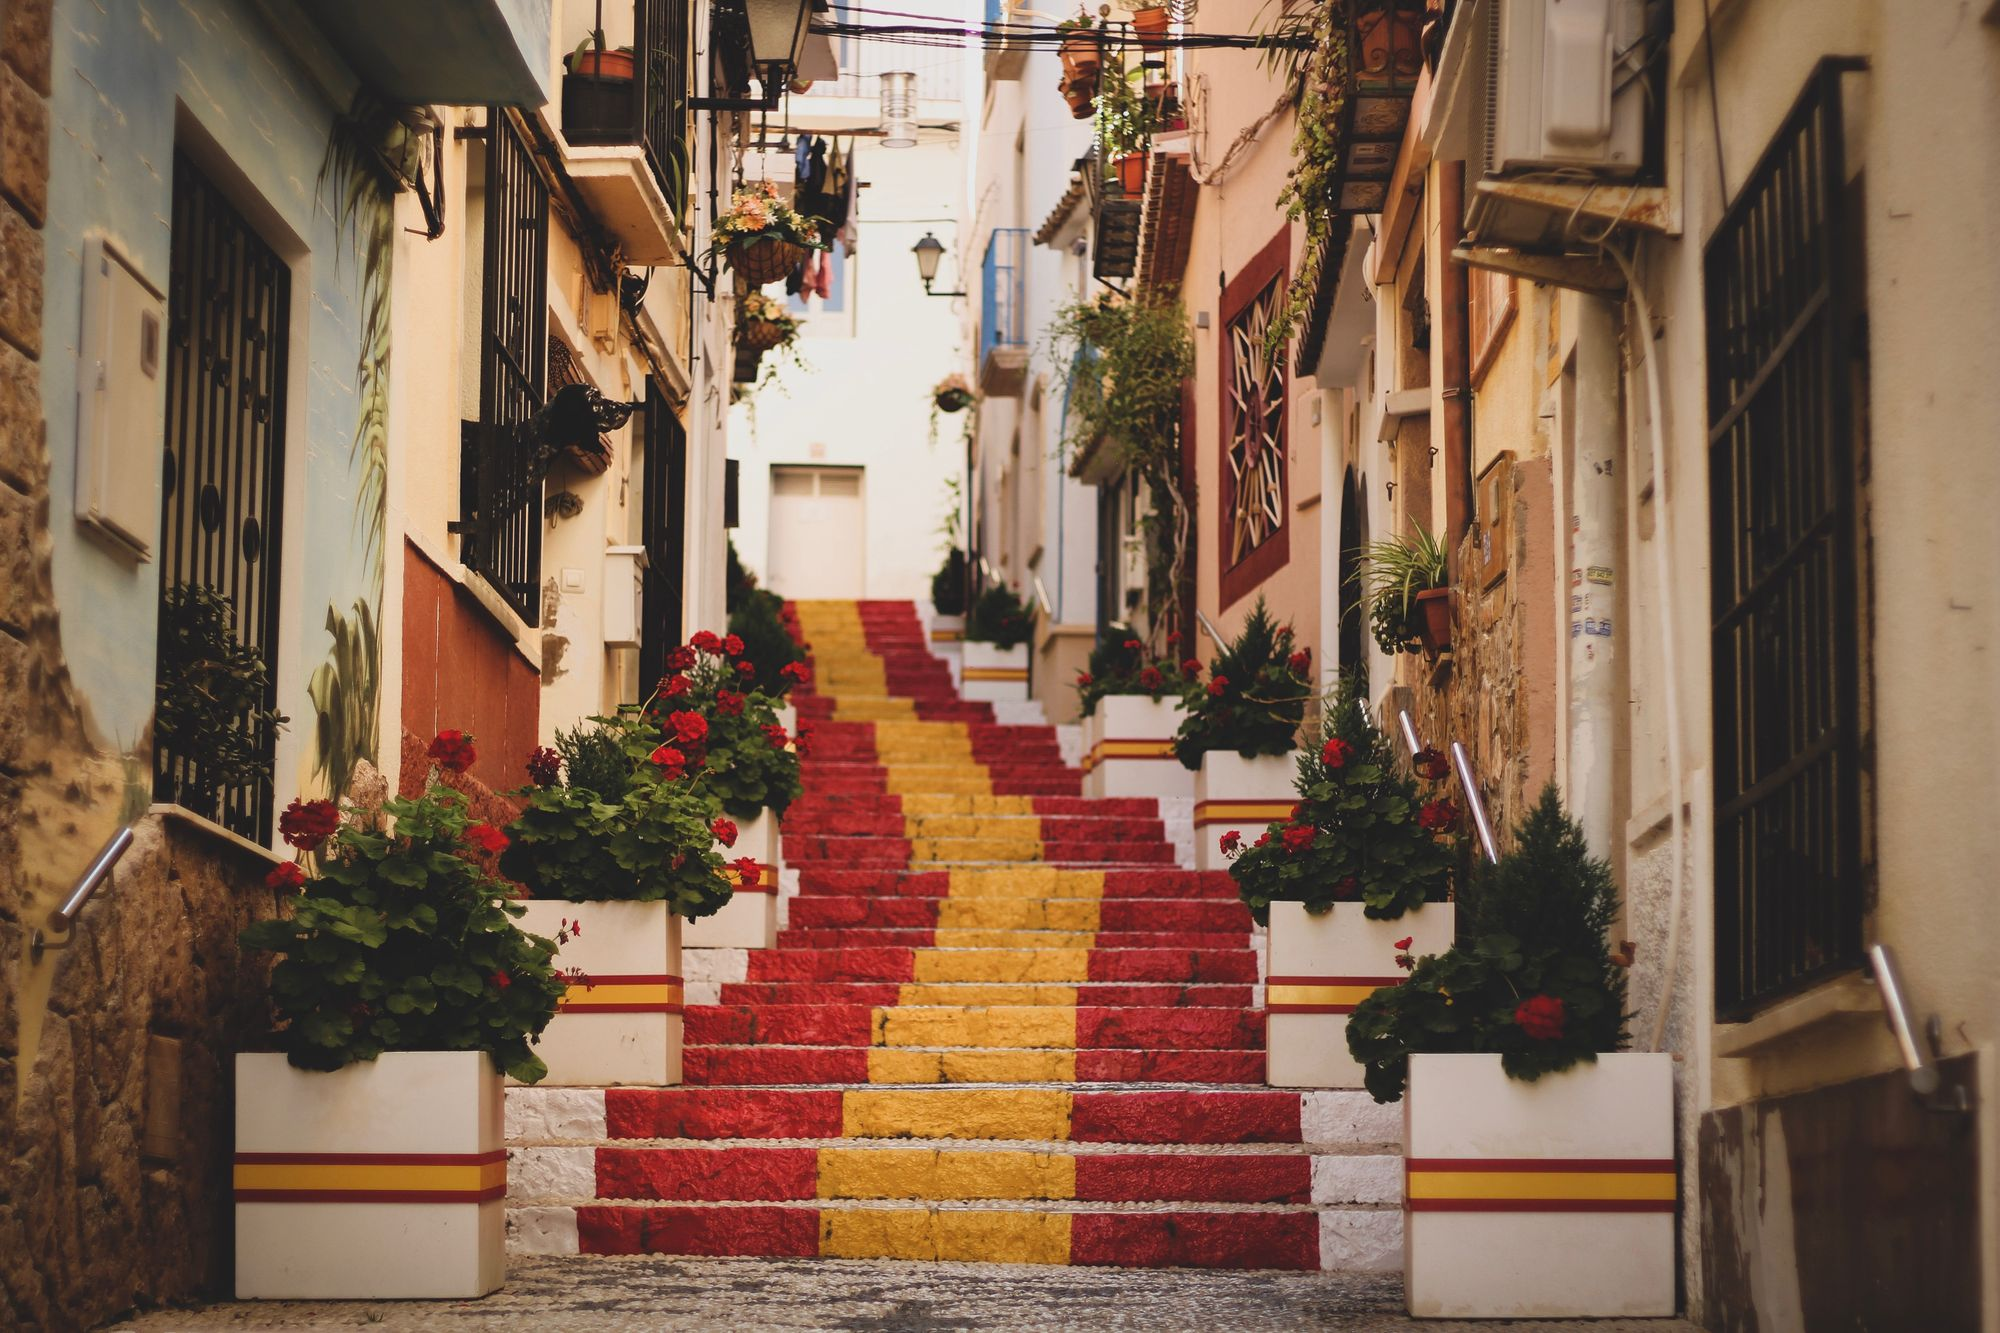 Stairs in Old Town, Calpe